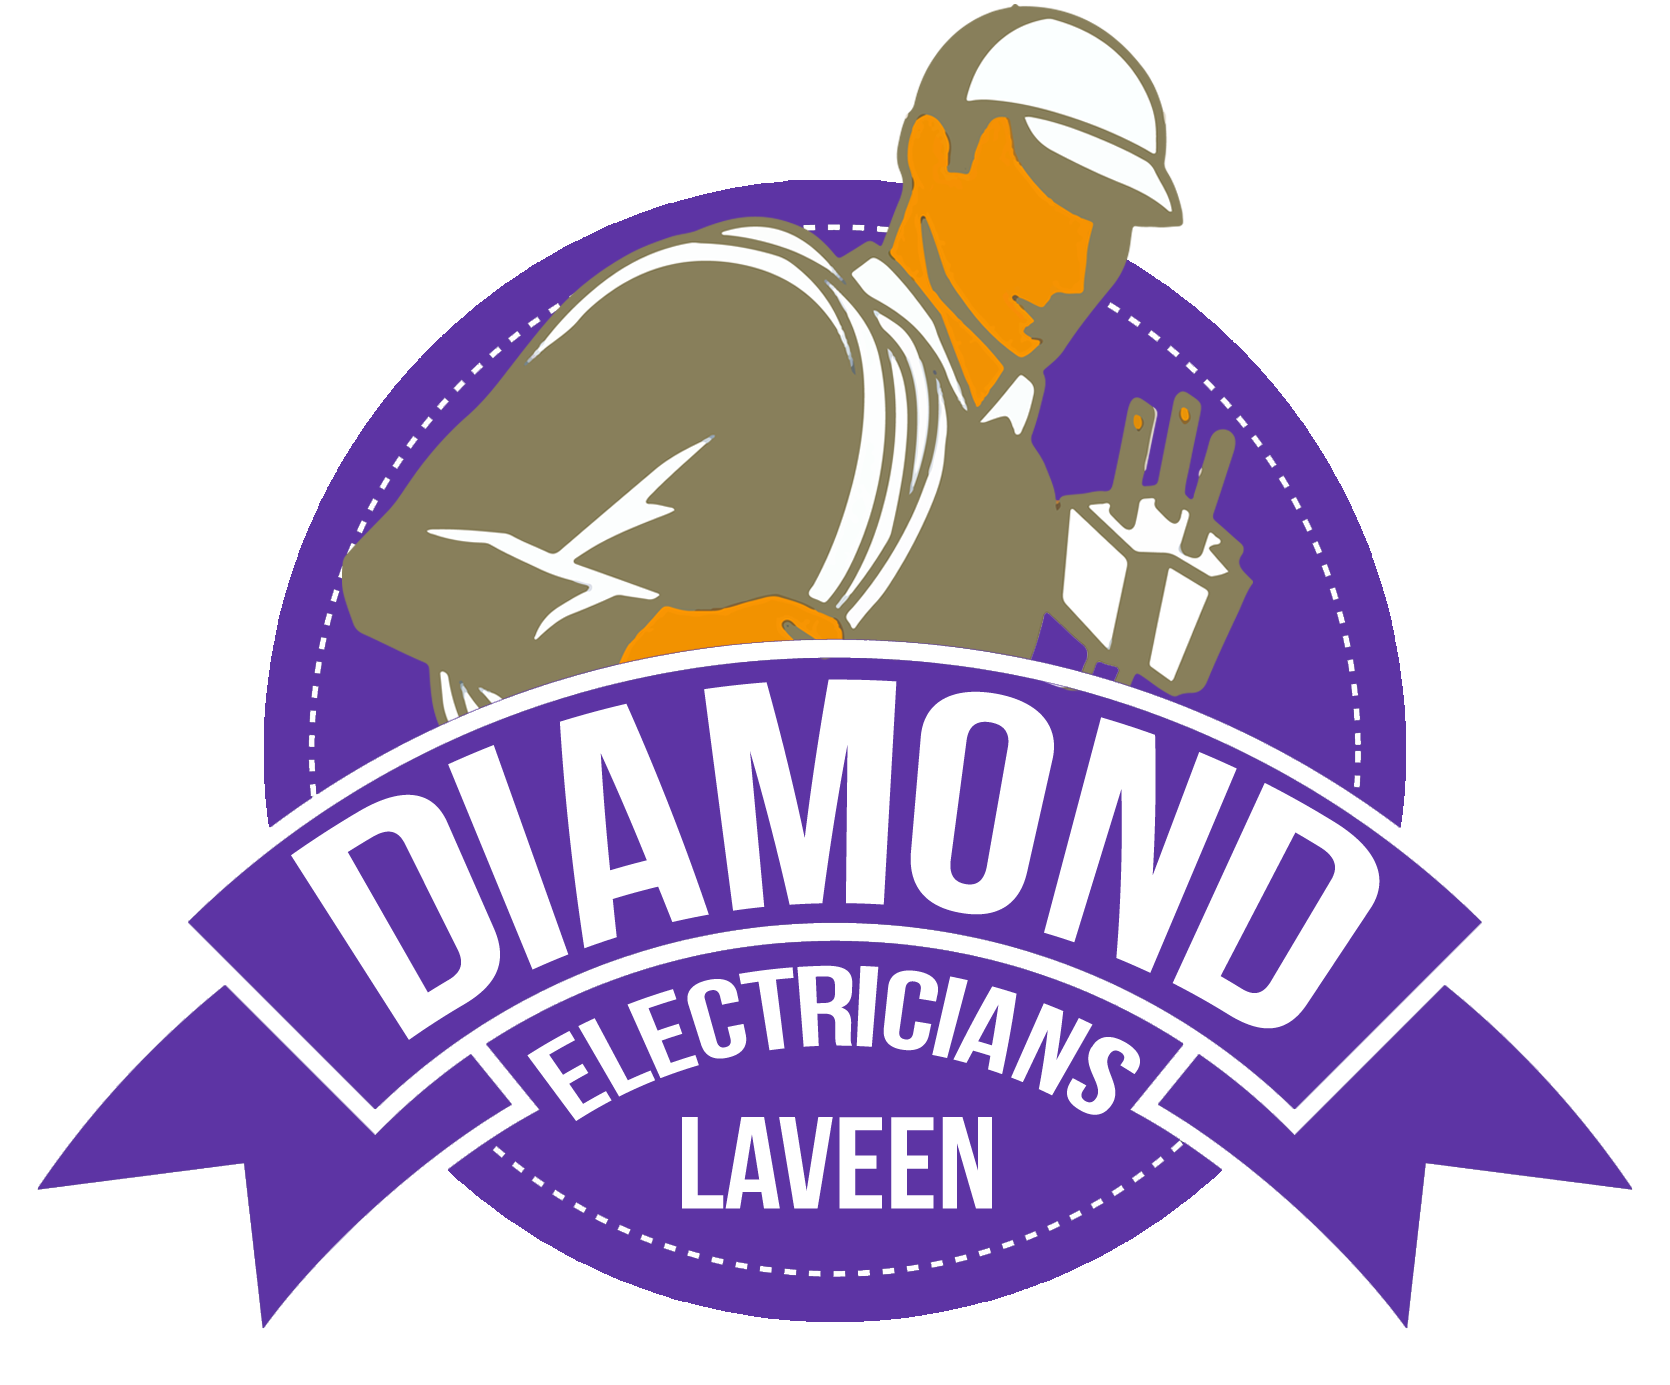 If You Are In Need Of A Top Electrician For Residents Trust Contact Diamond Electricians Laveen For A Free Consultation On Lighting And Wiring Services Call U